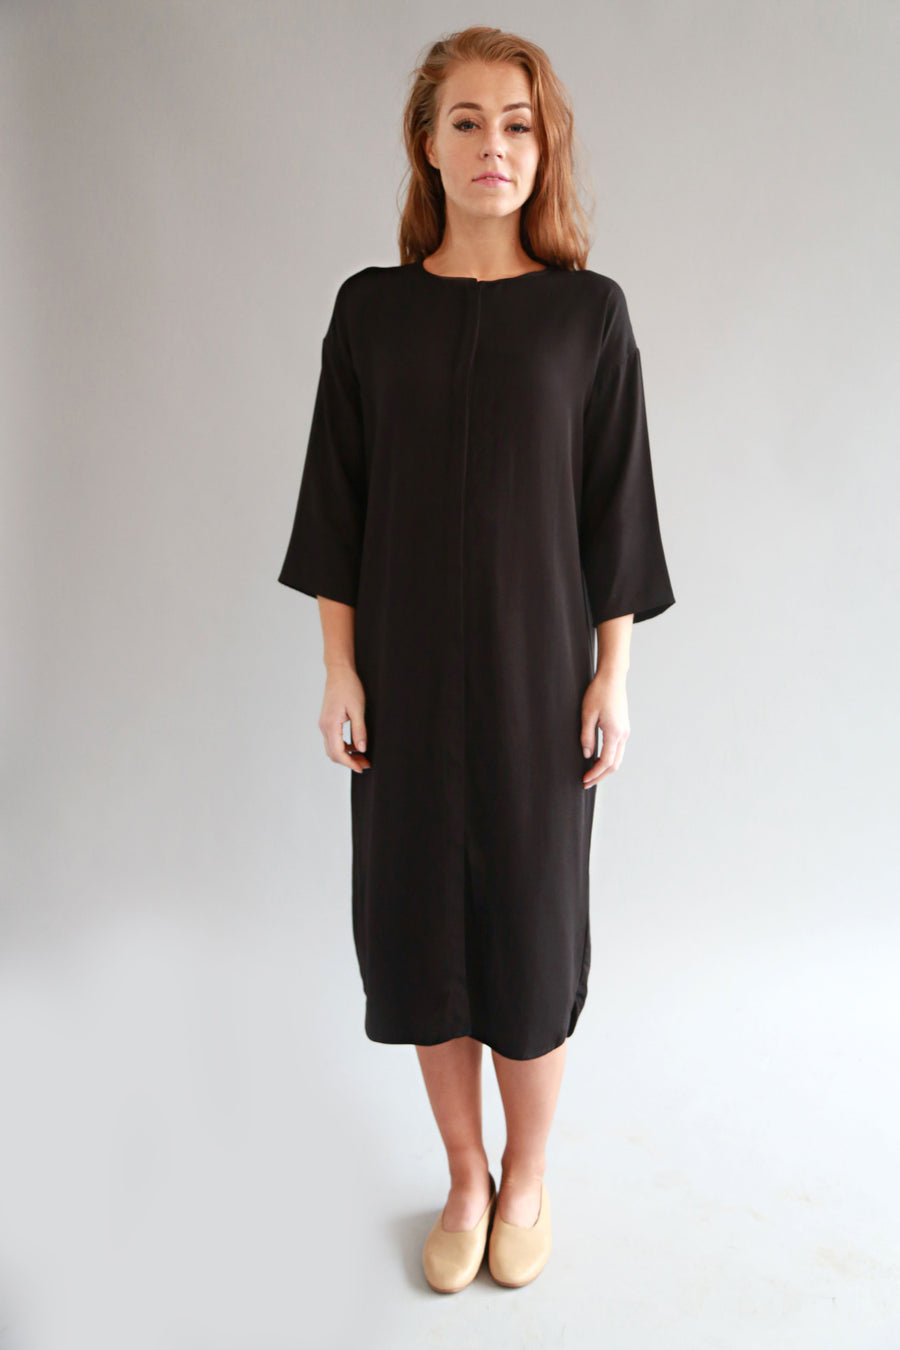 BLACK MAIA DRESS - SOLIKA